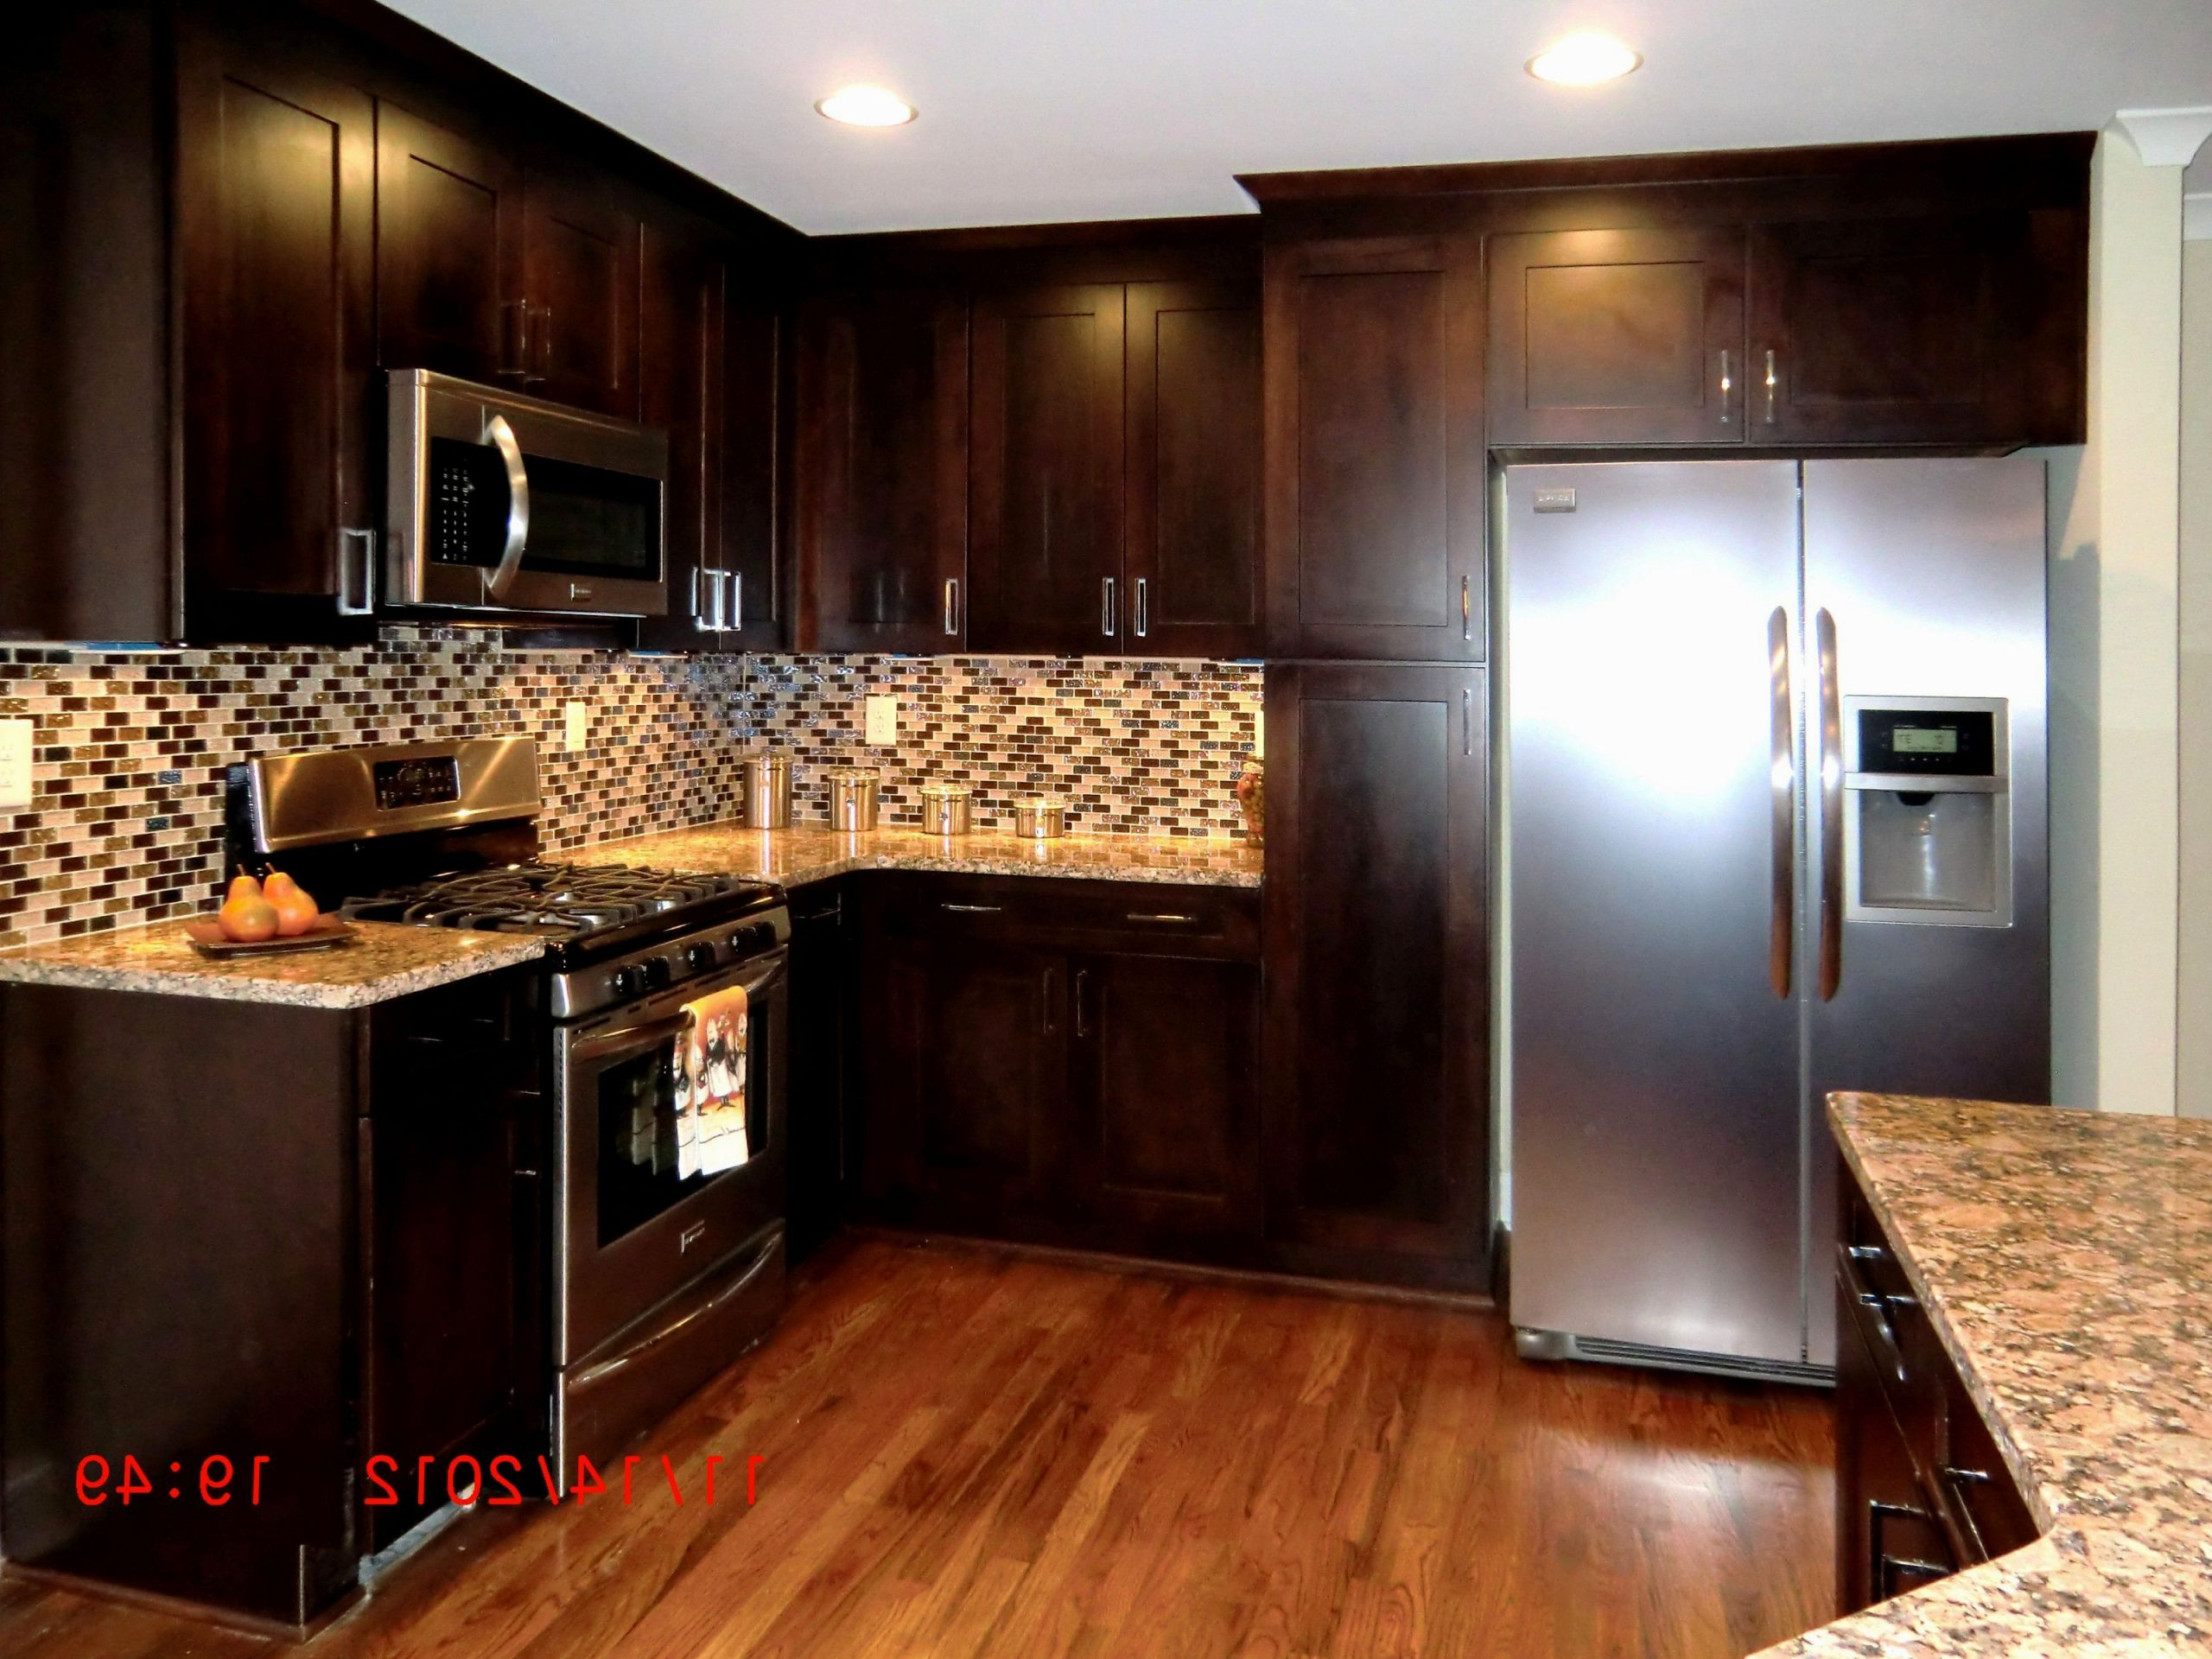 hardwood floor colors home depot of 35 elegant kitchen cabinet color schemes pictures living room with regard to furniture countertops cherry wood kitchen cabinets home depot brown best pain